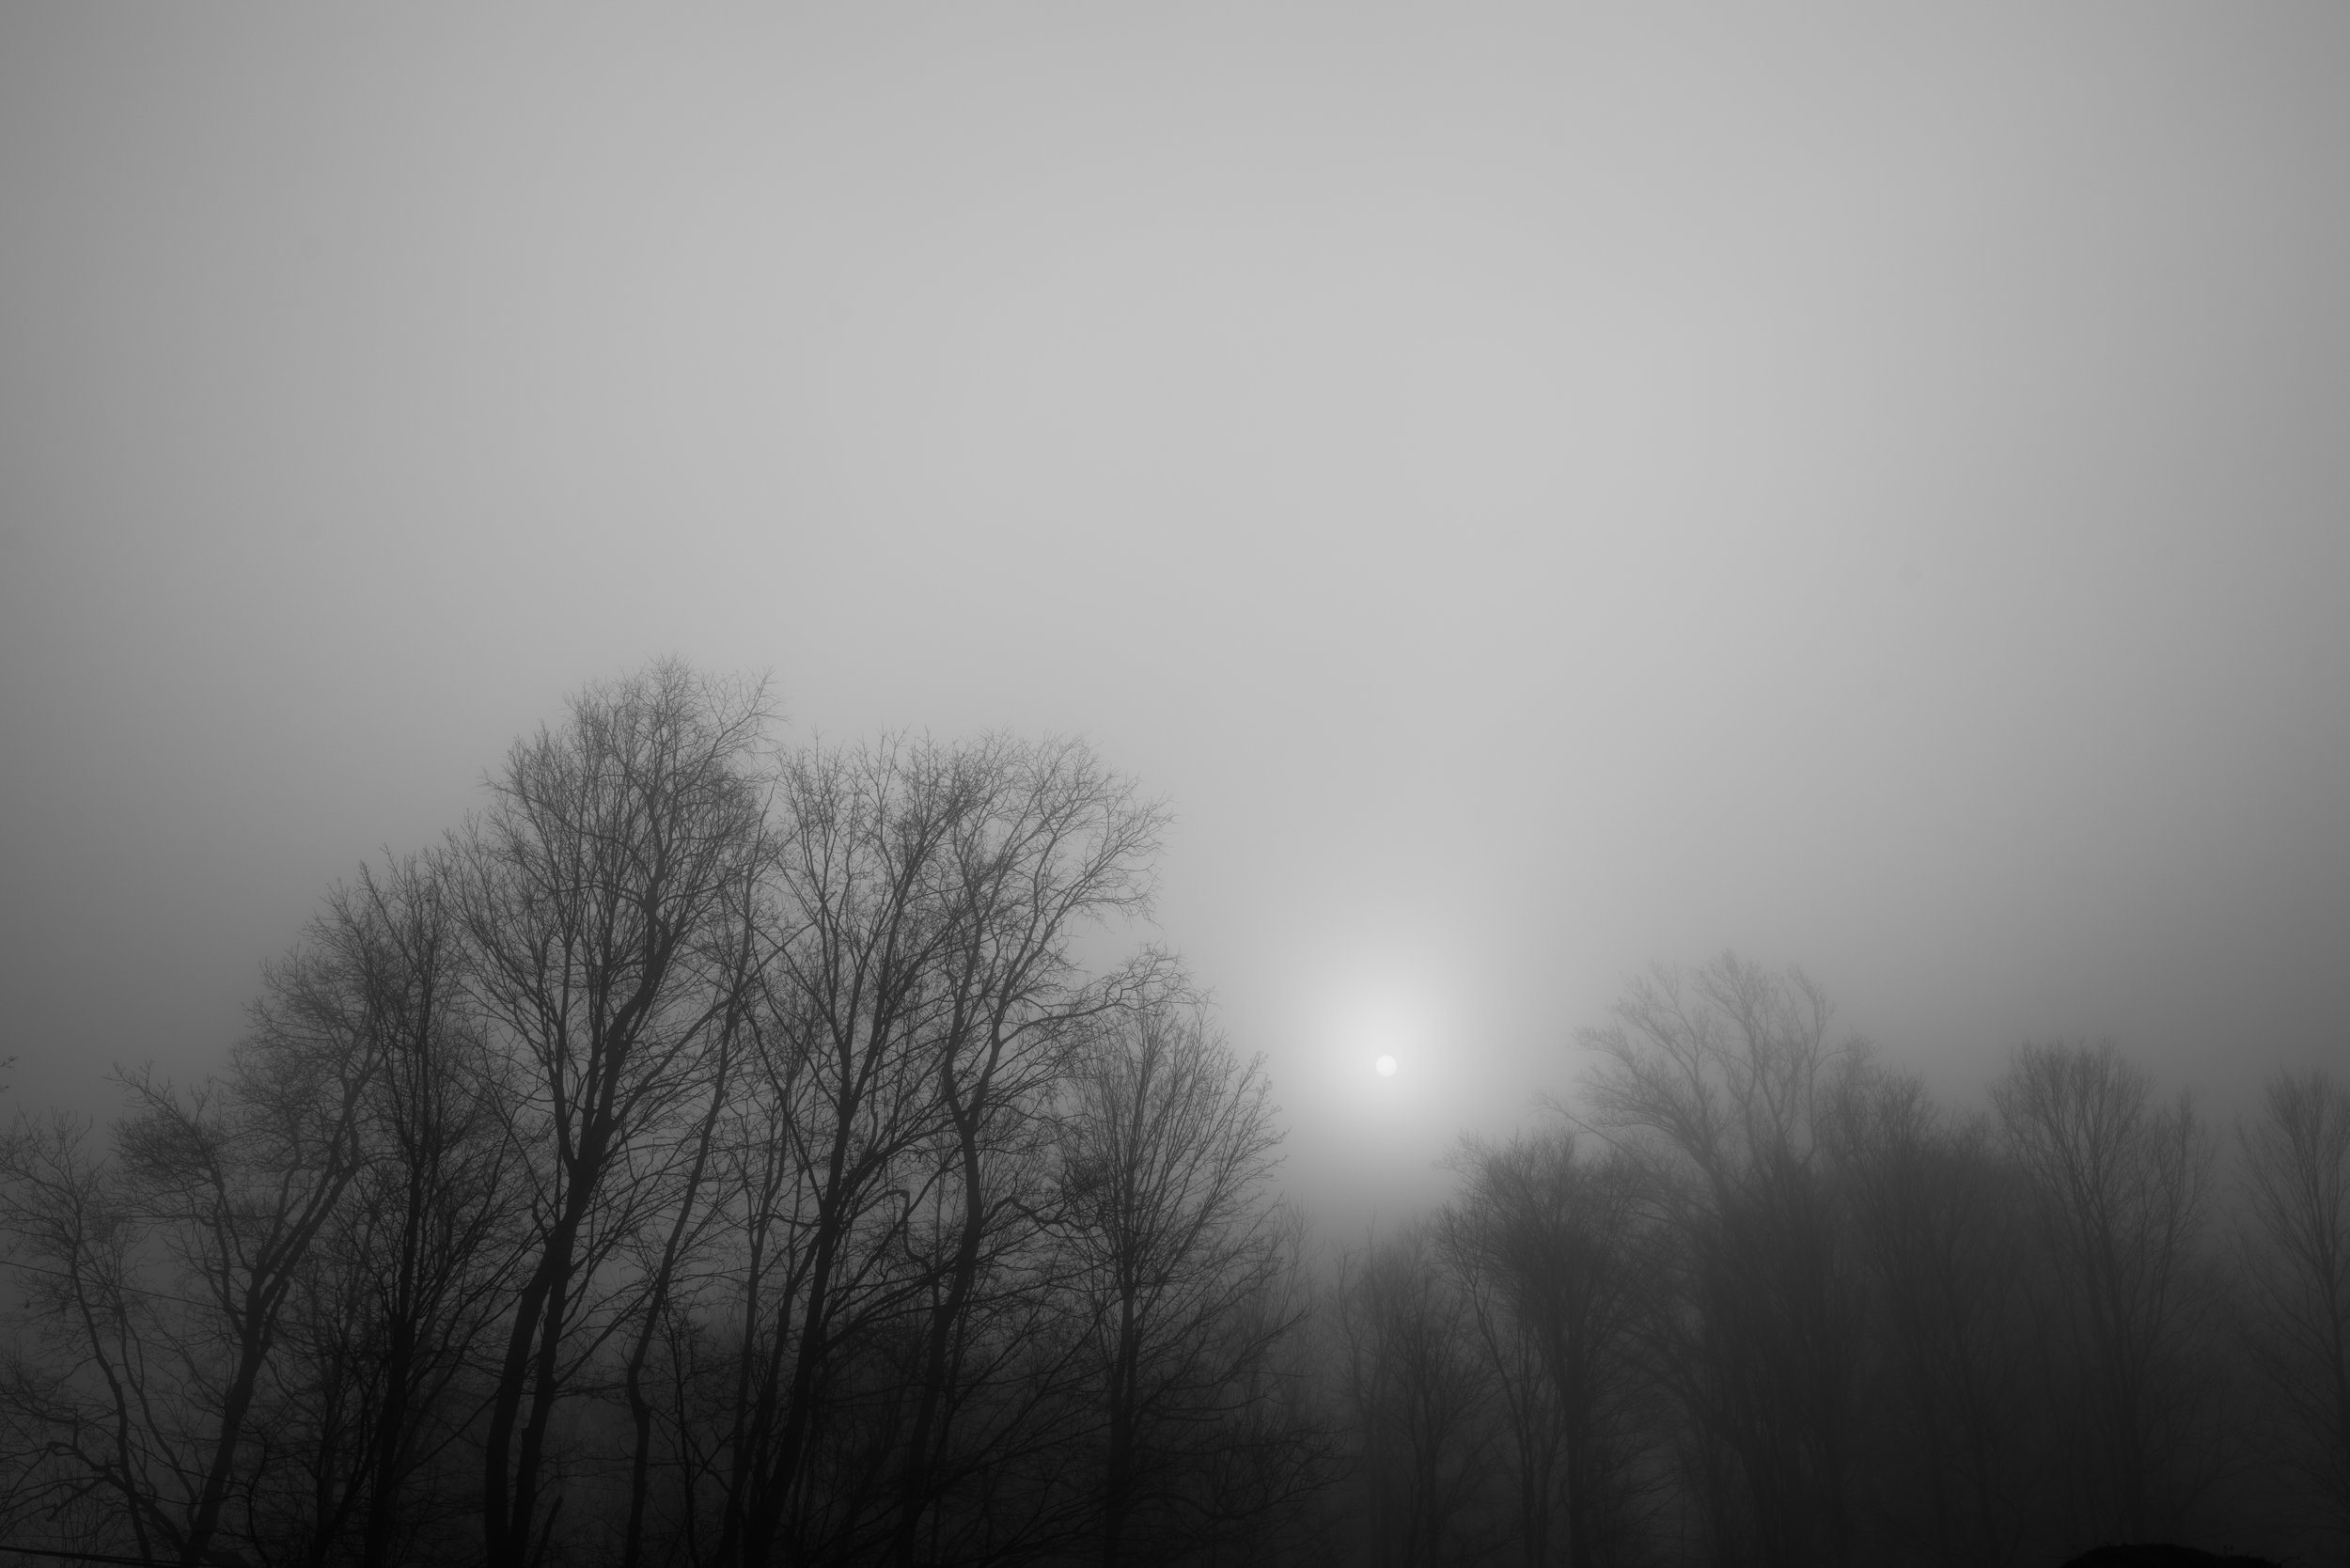 sun_peaking_foggy_trees.jpg